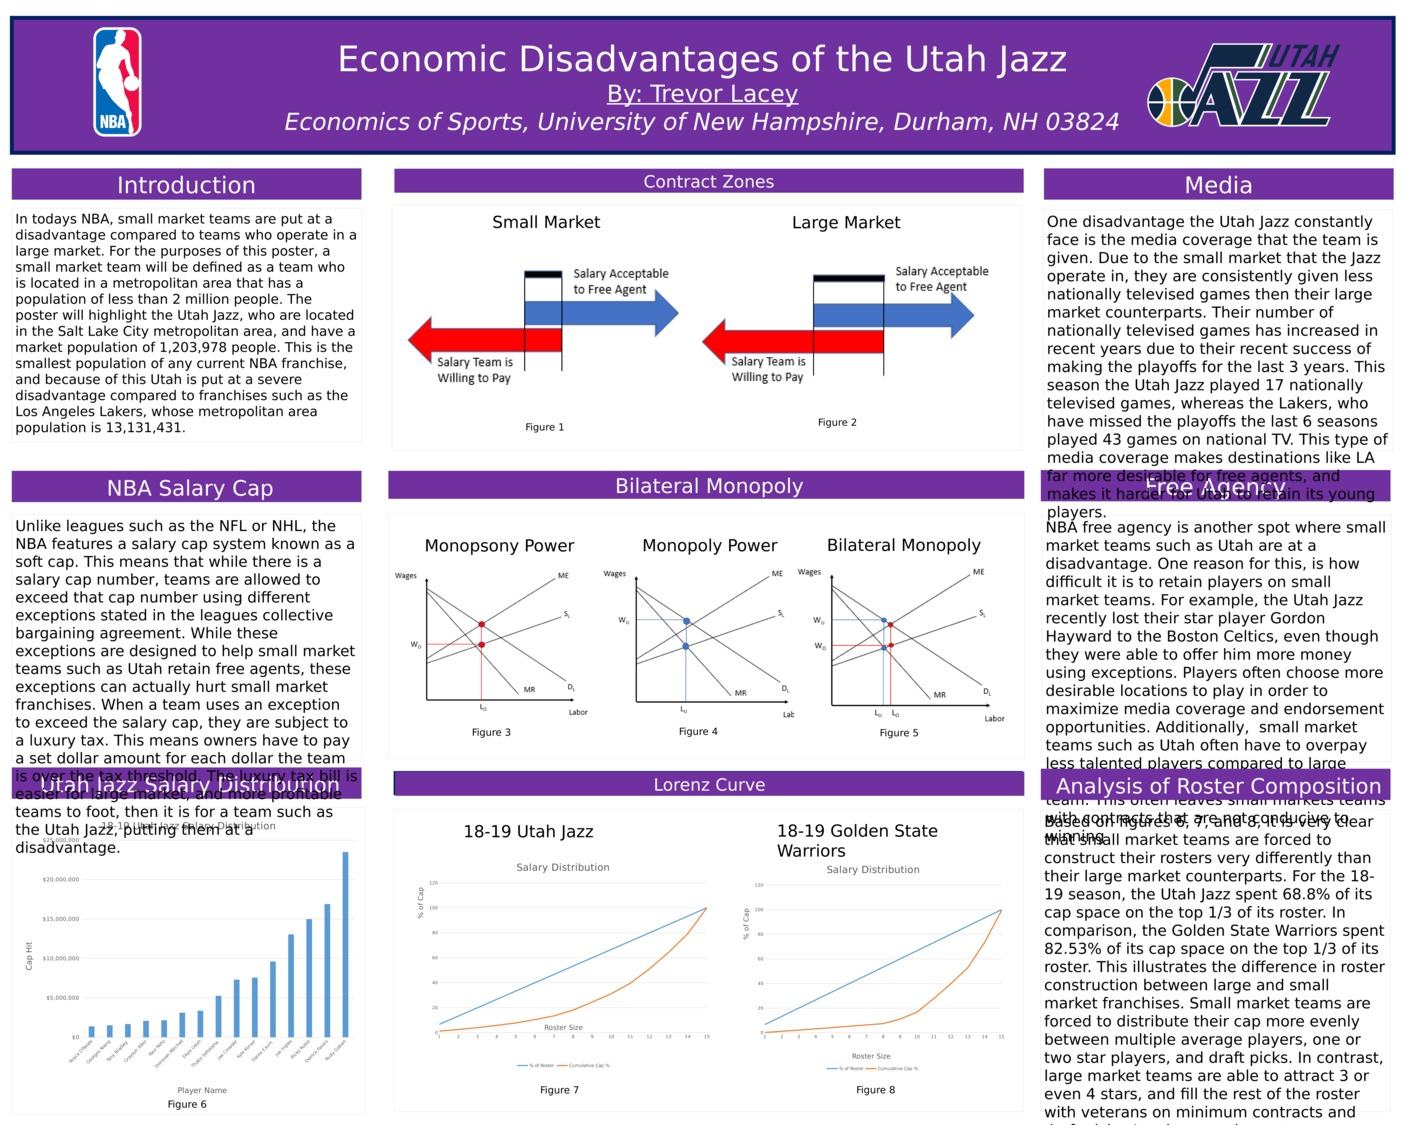 Economic Disadvantages Of The Utah Jazz by ttl1001